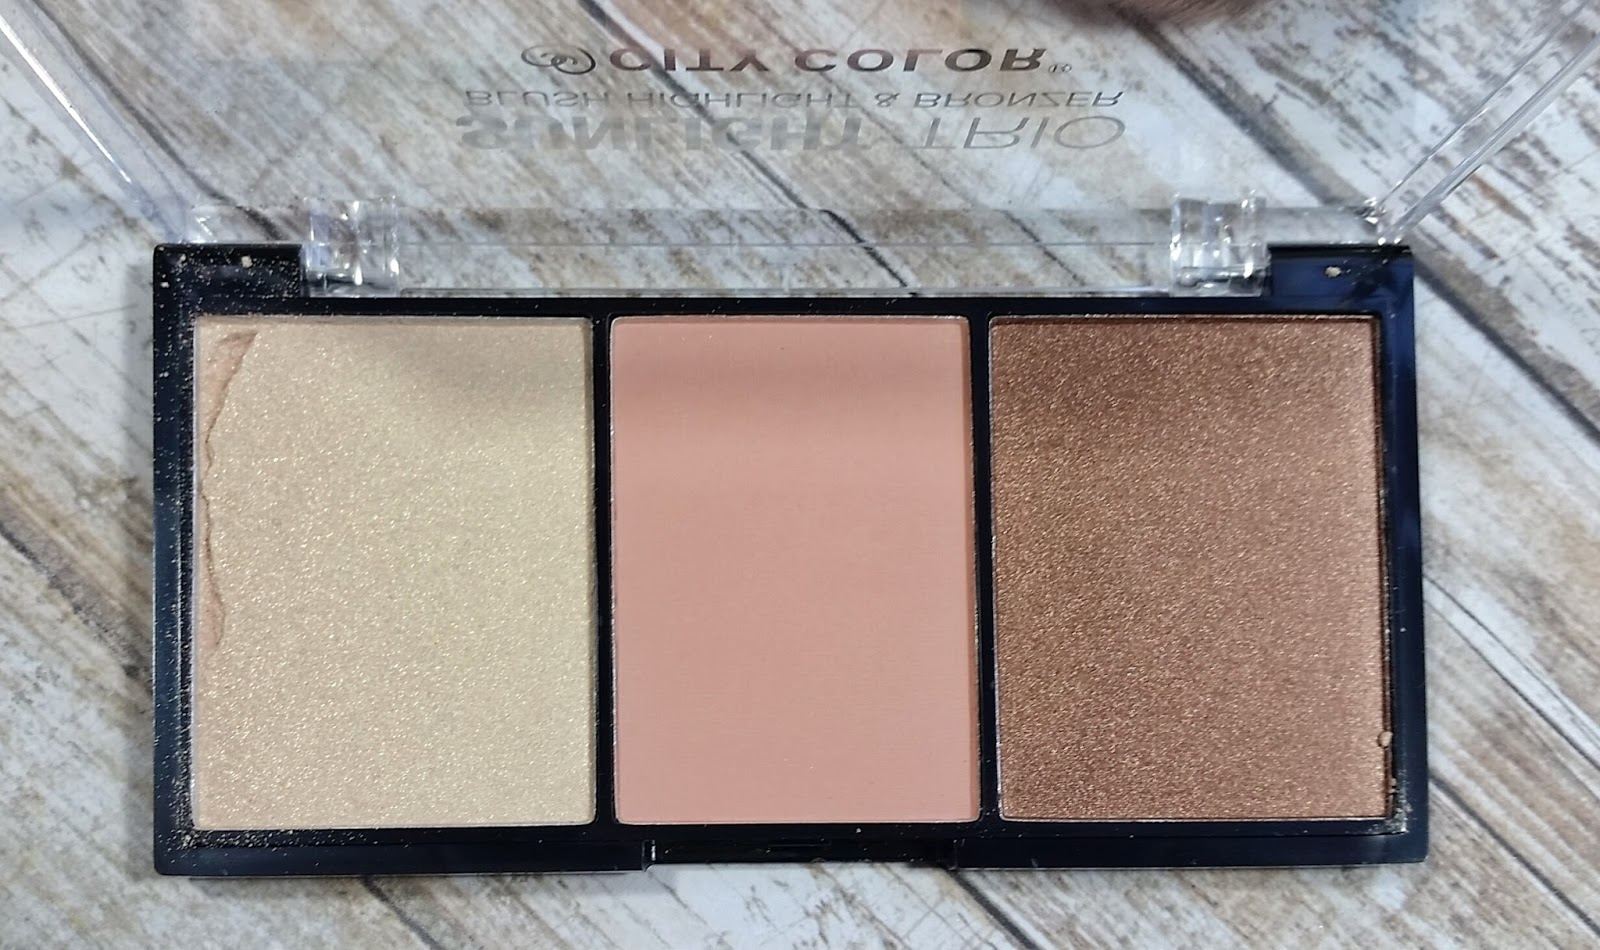 City Color Sunlight Trio Collection 2 review